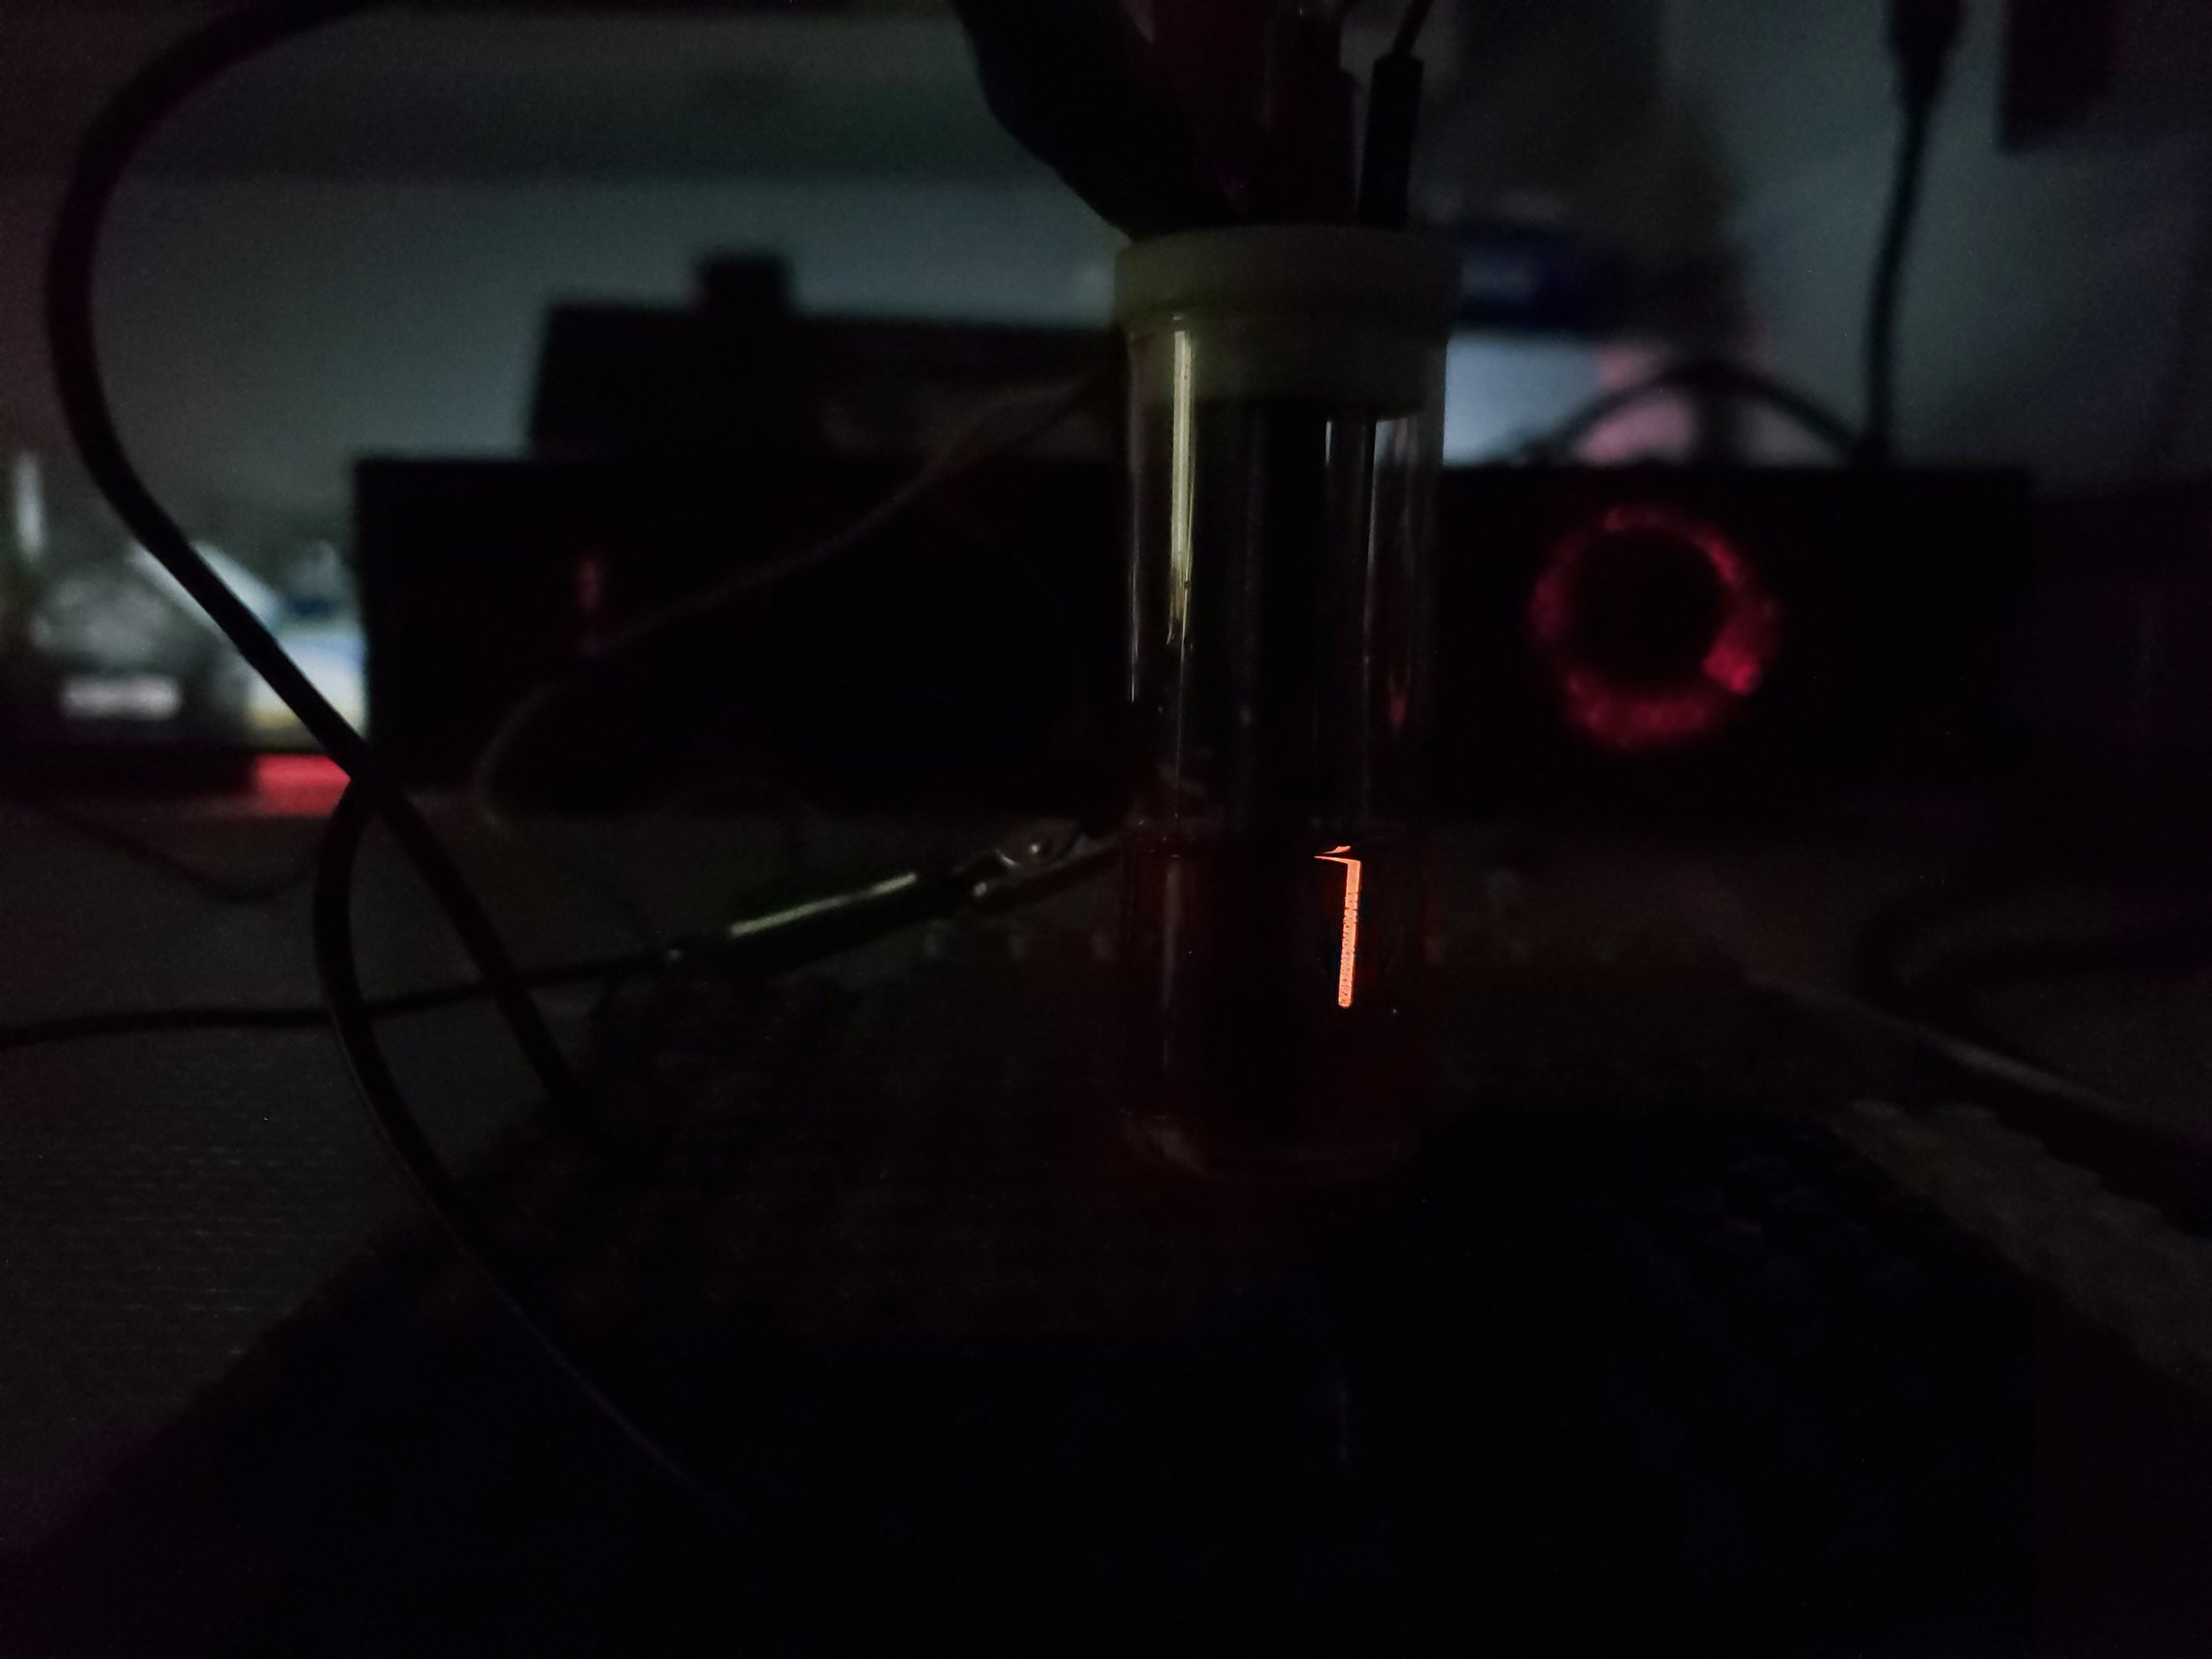 An example of electroluminescence using Ru(Bipy)3 and a simple electrode: pencil lead.